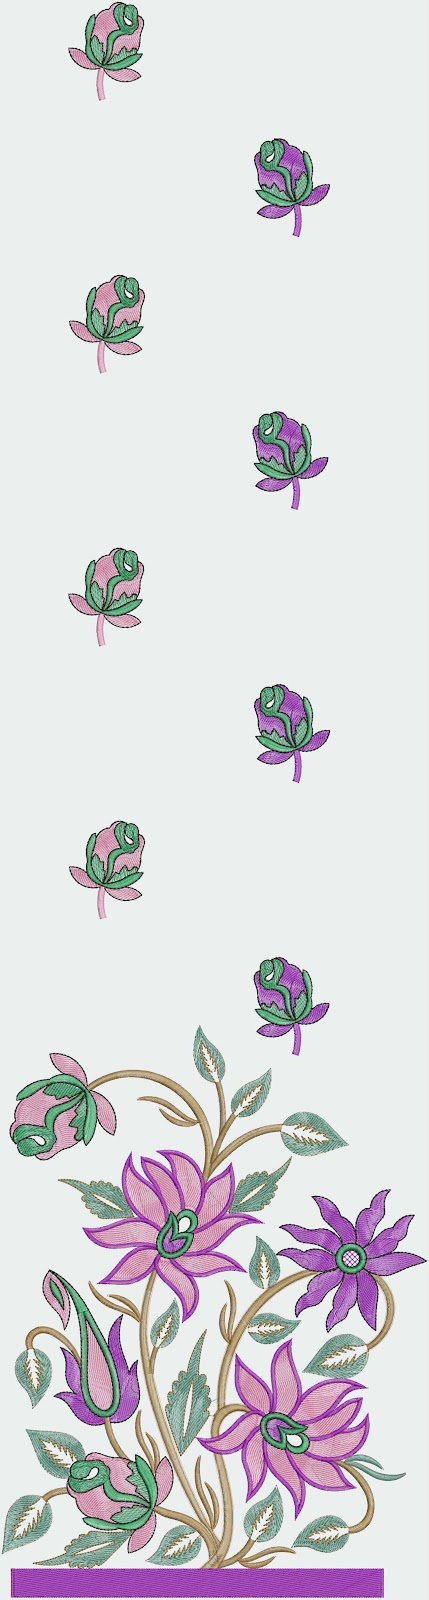 Embdesigntube Collegeous Girls Dress Latest Embroidery Designs